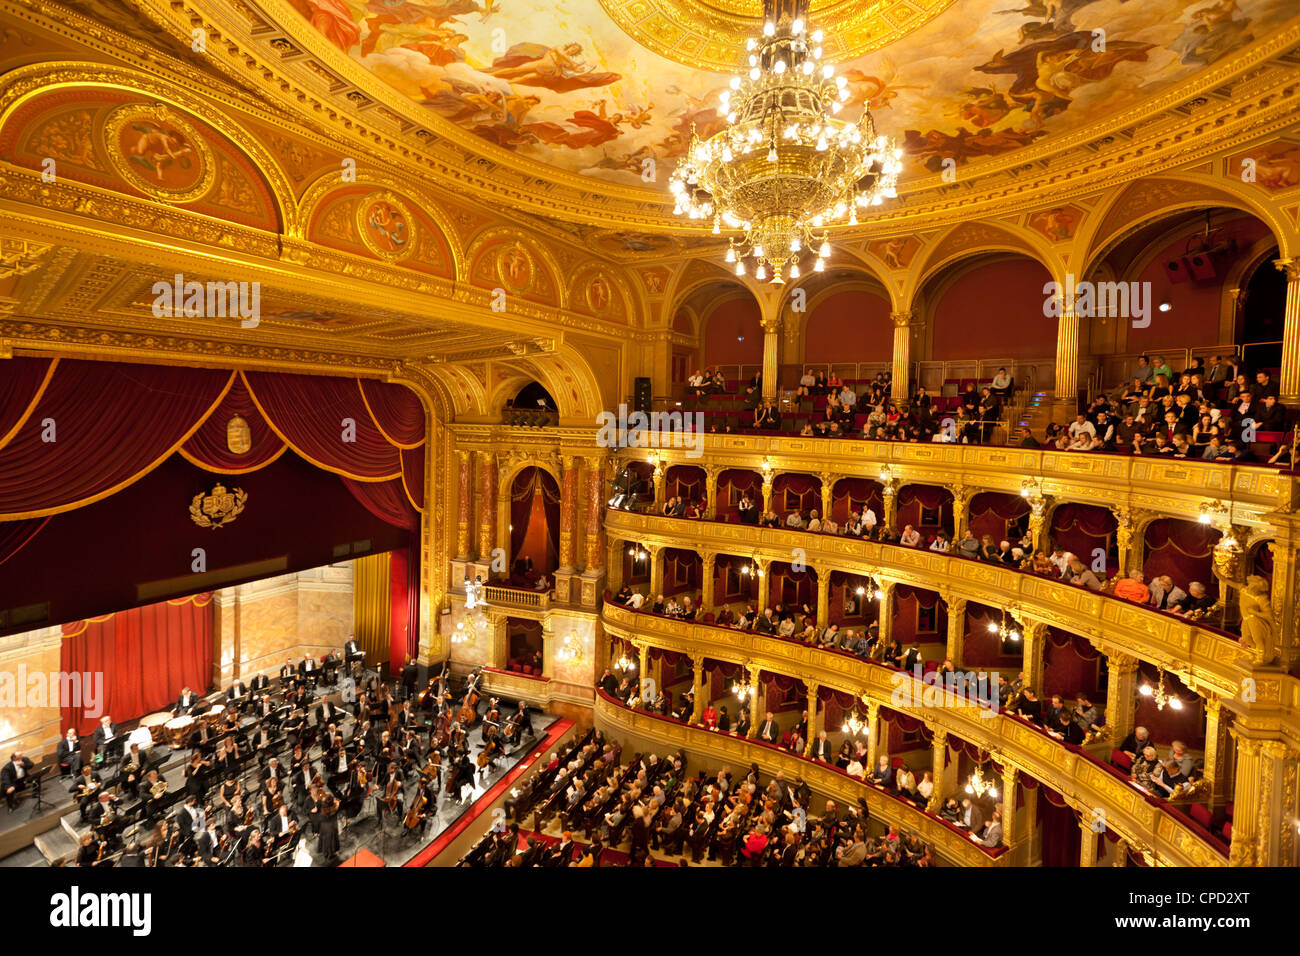 State Opera House (Magyar Allami Operahaz) with Budapest Philharmonic Orchestra, Budapest, Central Hungary, Hungary, - Stock Image